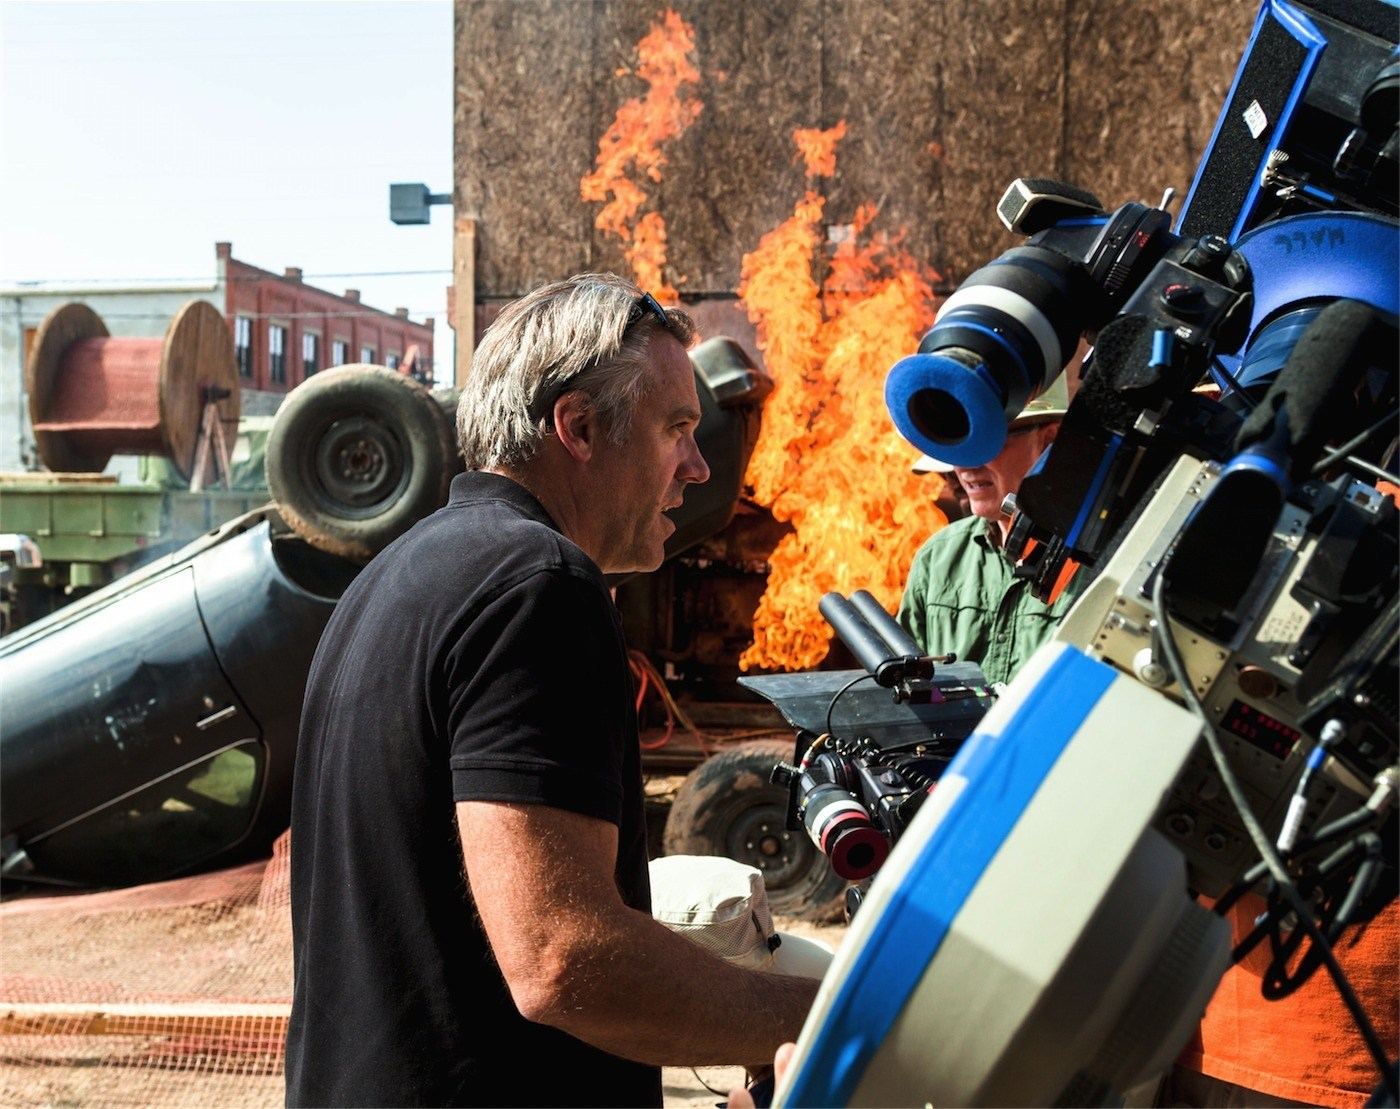 On Location : Transcendence (2014) Behind the Scenes